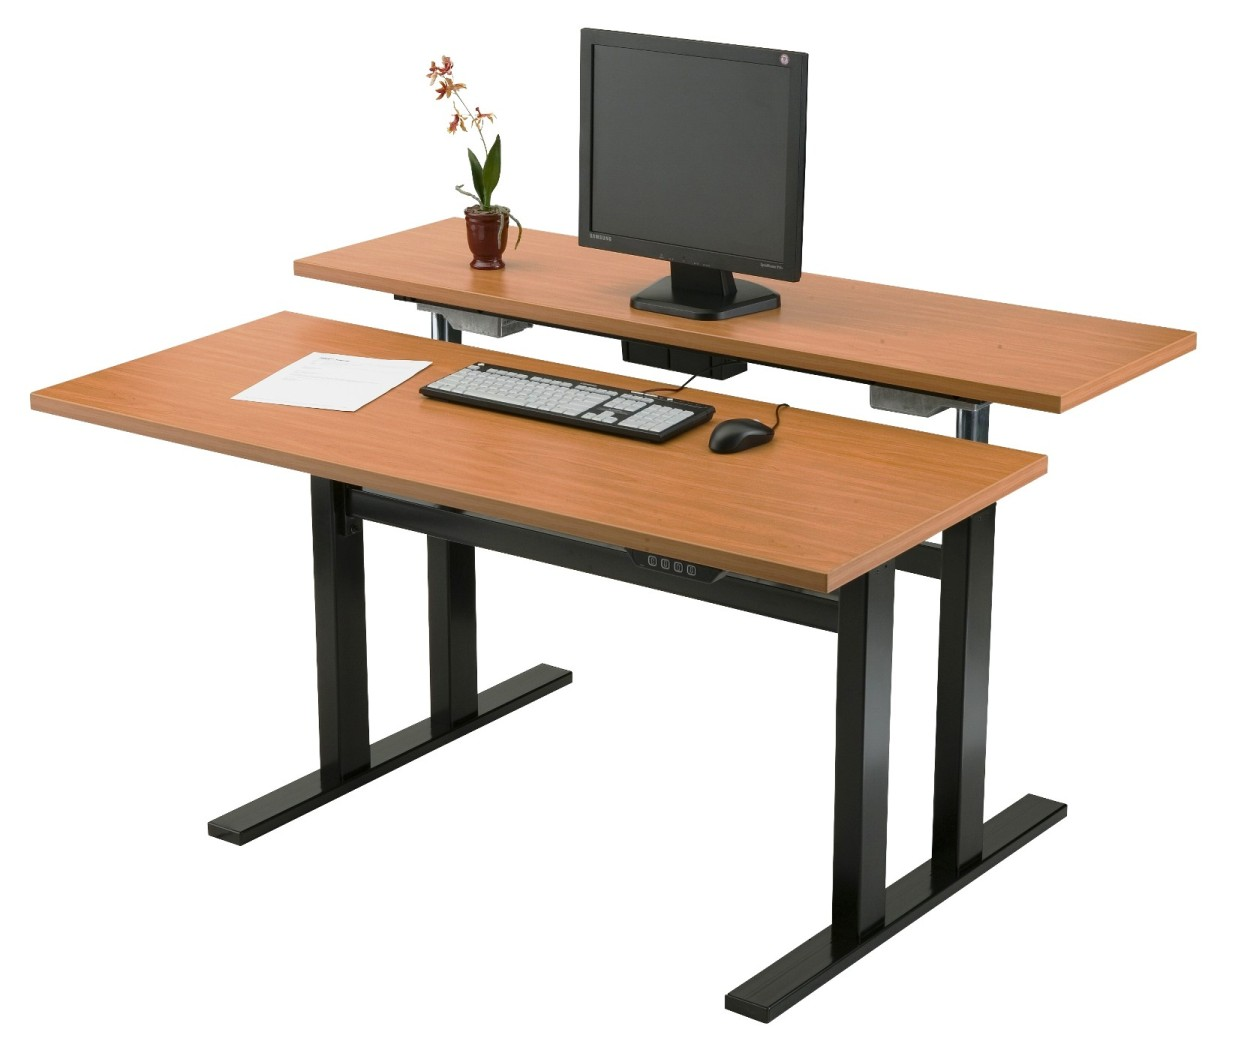 STANDING DESK. CONTROL ROOM DESK #TWN. TAA COMPLAINT MADE IN USA. FREE SHIPPING: </b></font>